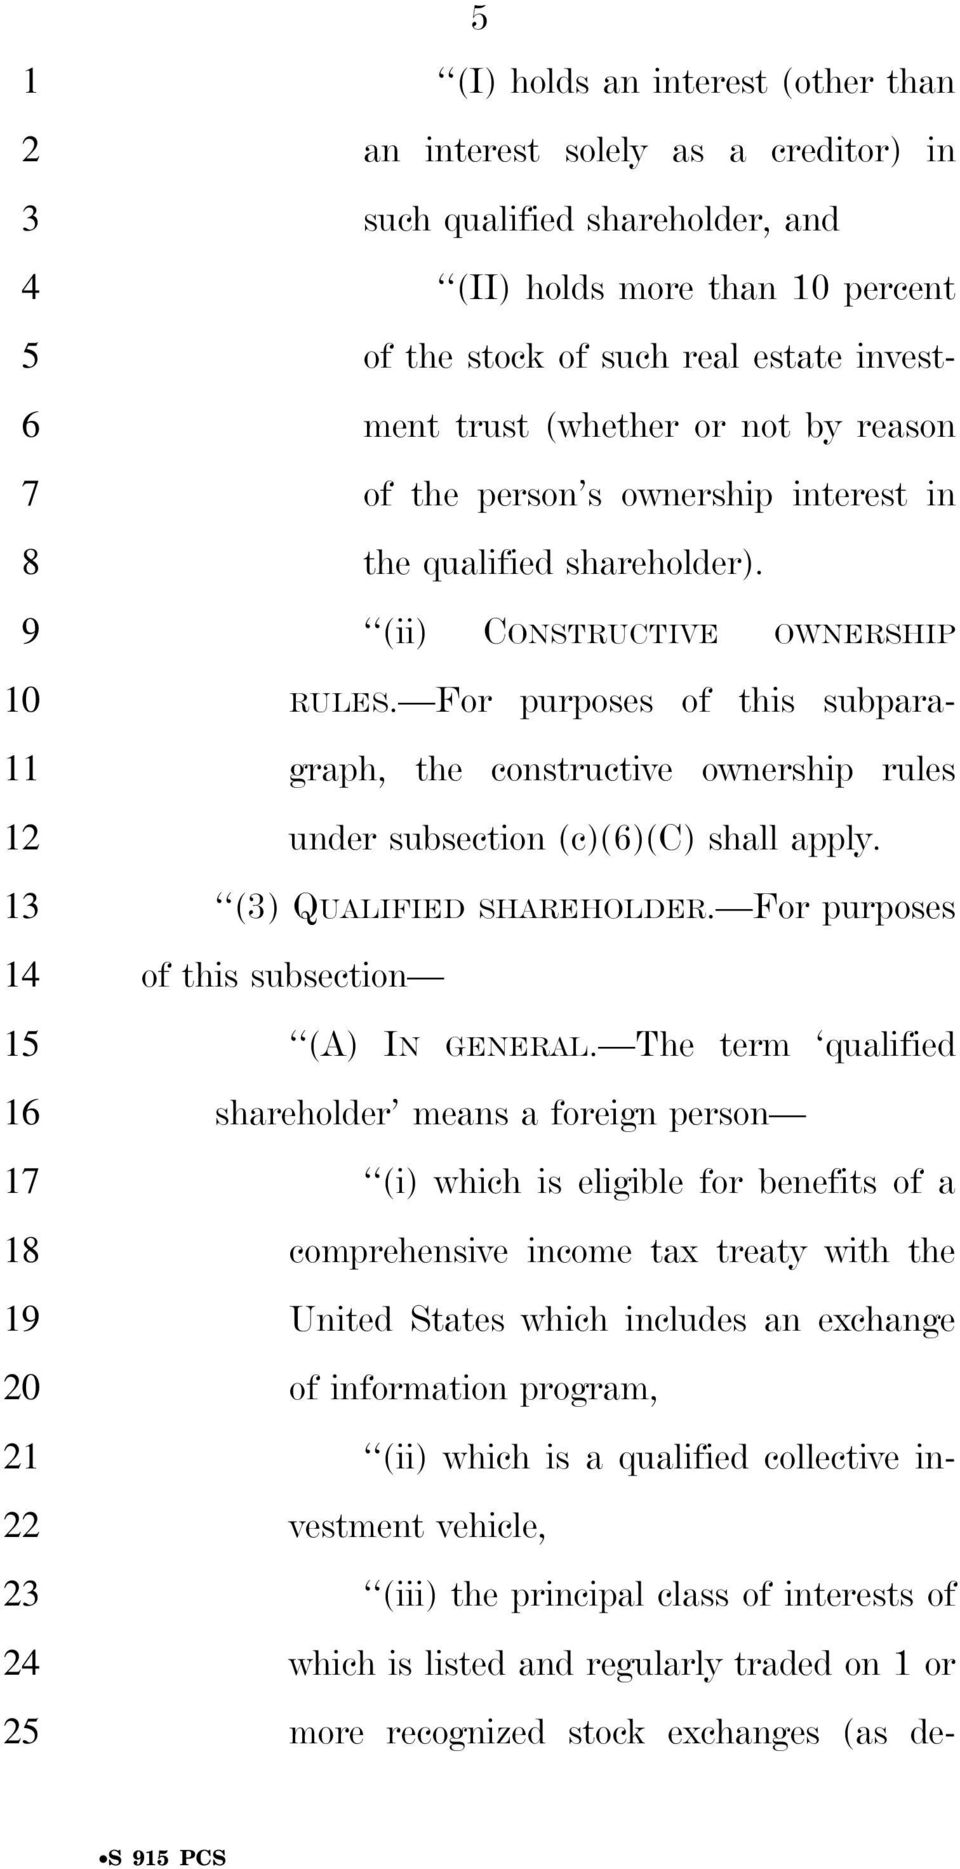 For purposes of this subparagraph, the constructive ownership rules under subsection (c)()(c) shall apply. () QUALIFIED SHAREHOLDER. For purposes of this subsection (A) IN GENERAL.